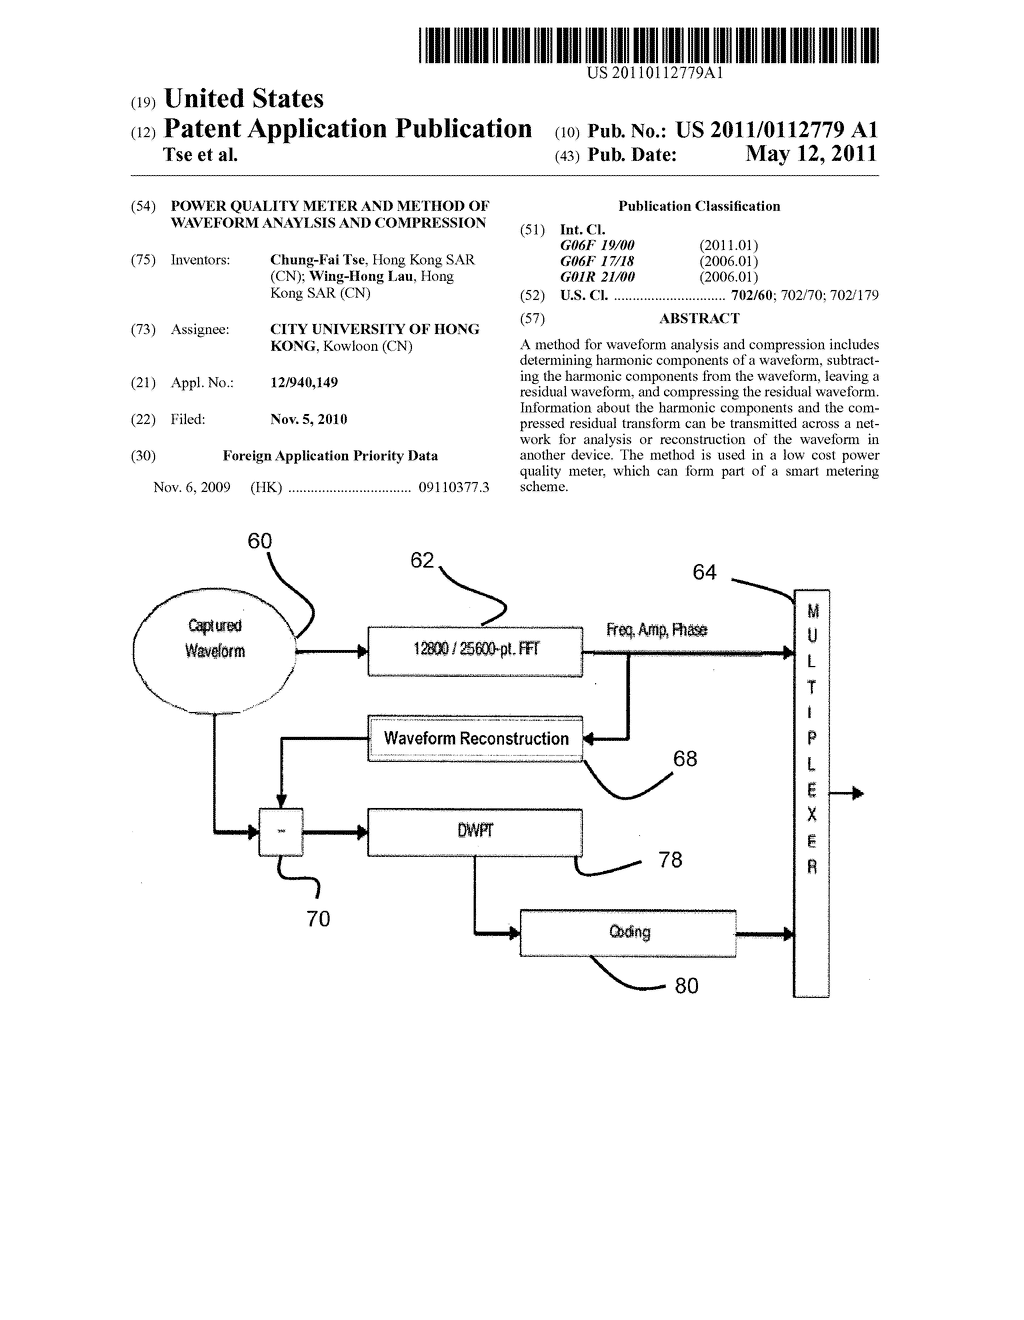 POWER QUALITY METER AND METHOD OF WAVEFORM ANAYLSIS AND COMPRESSION -  diagram, schematic, and image 01